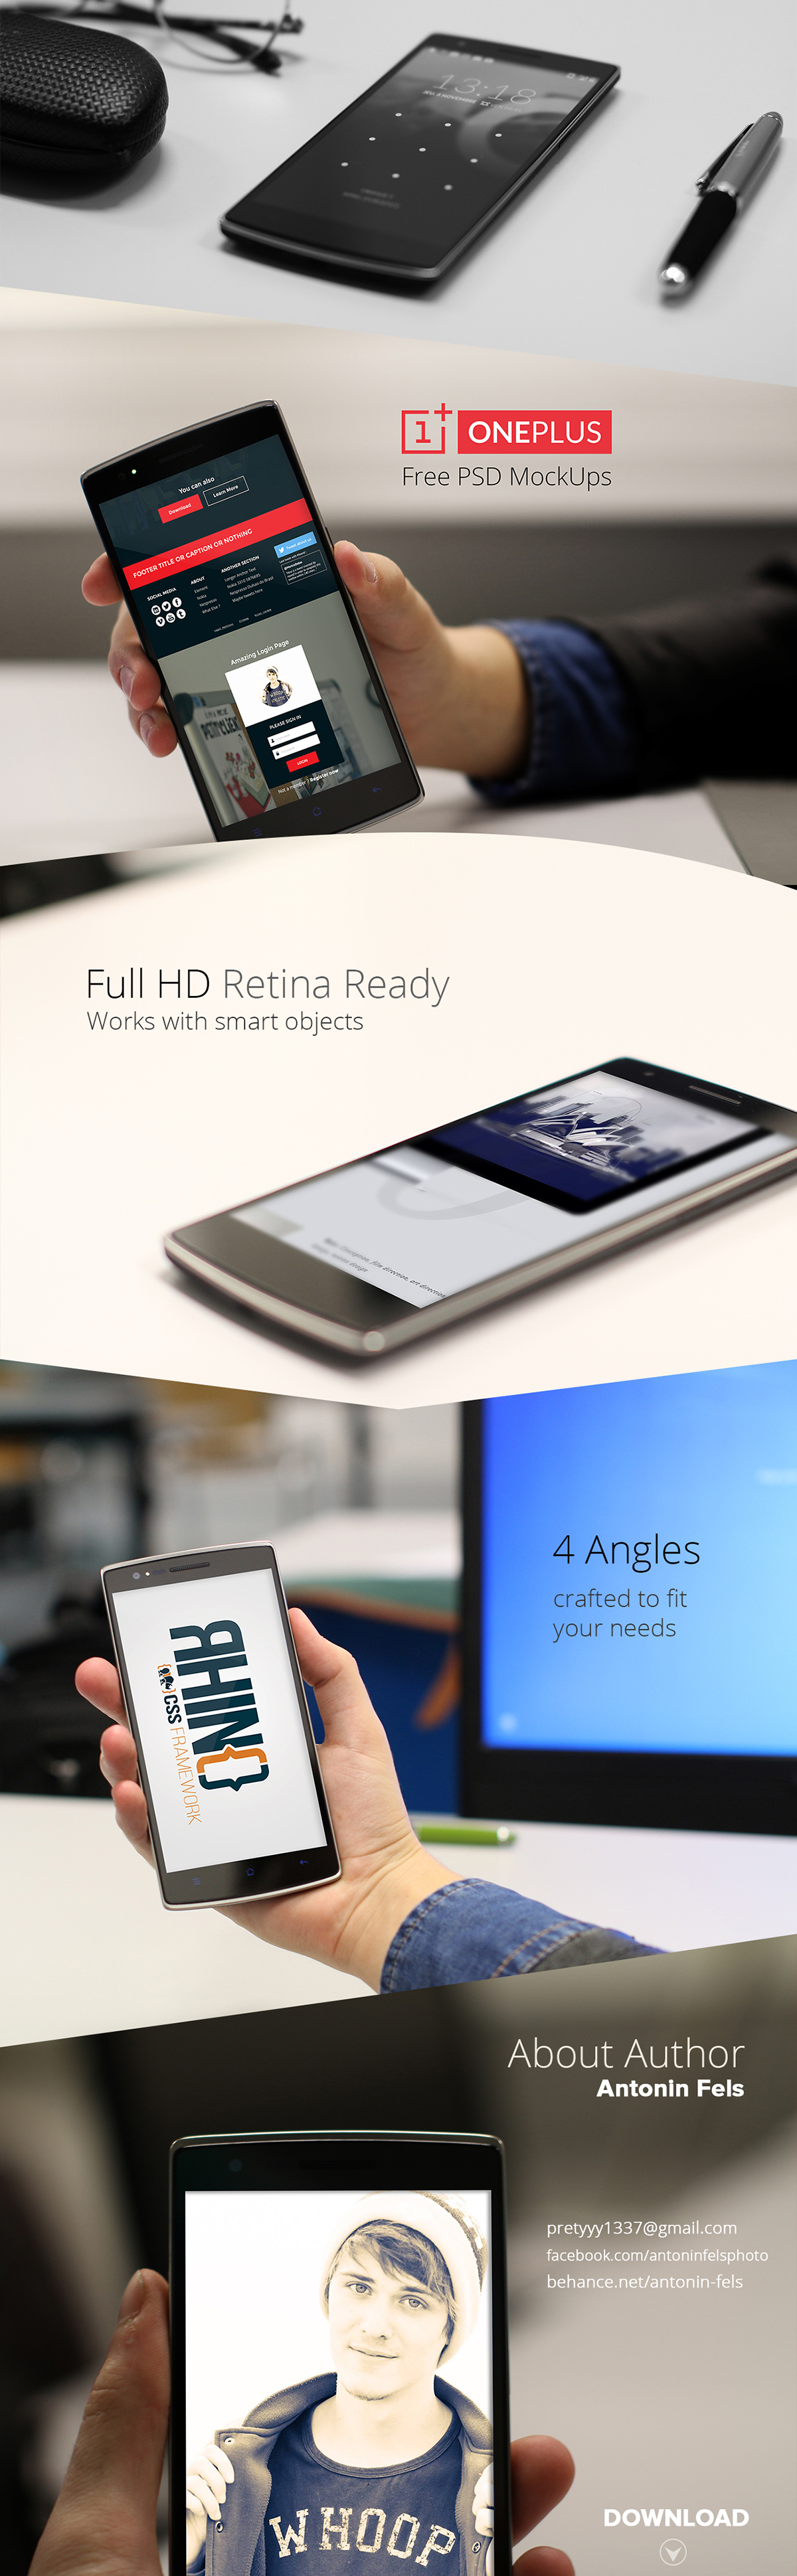 Mockup,free,psd,template,OnePlus One,One+